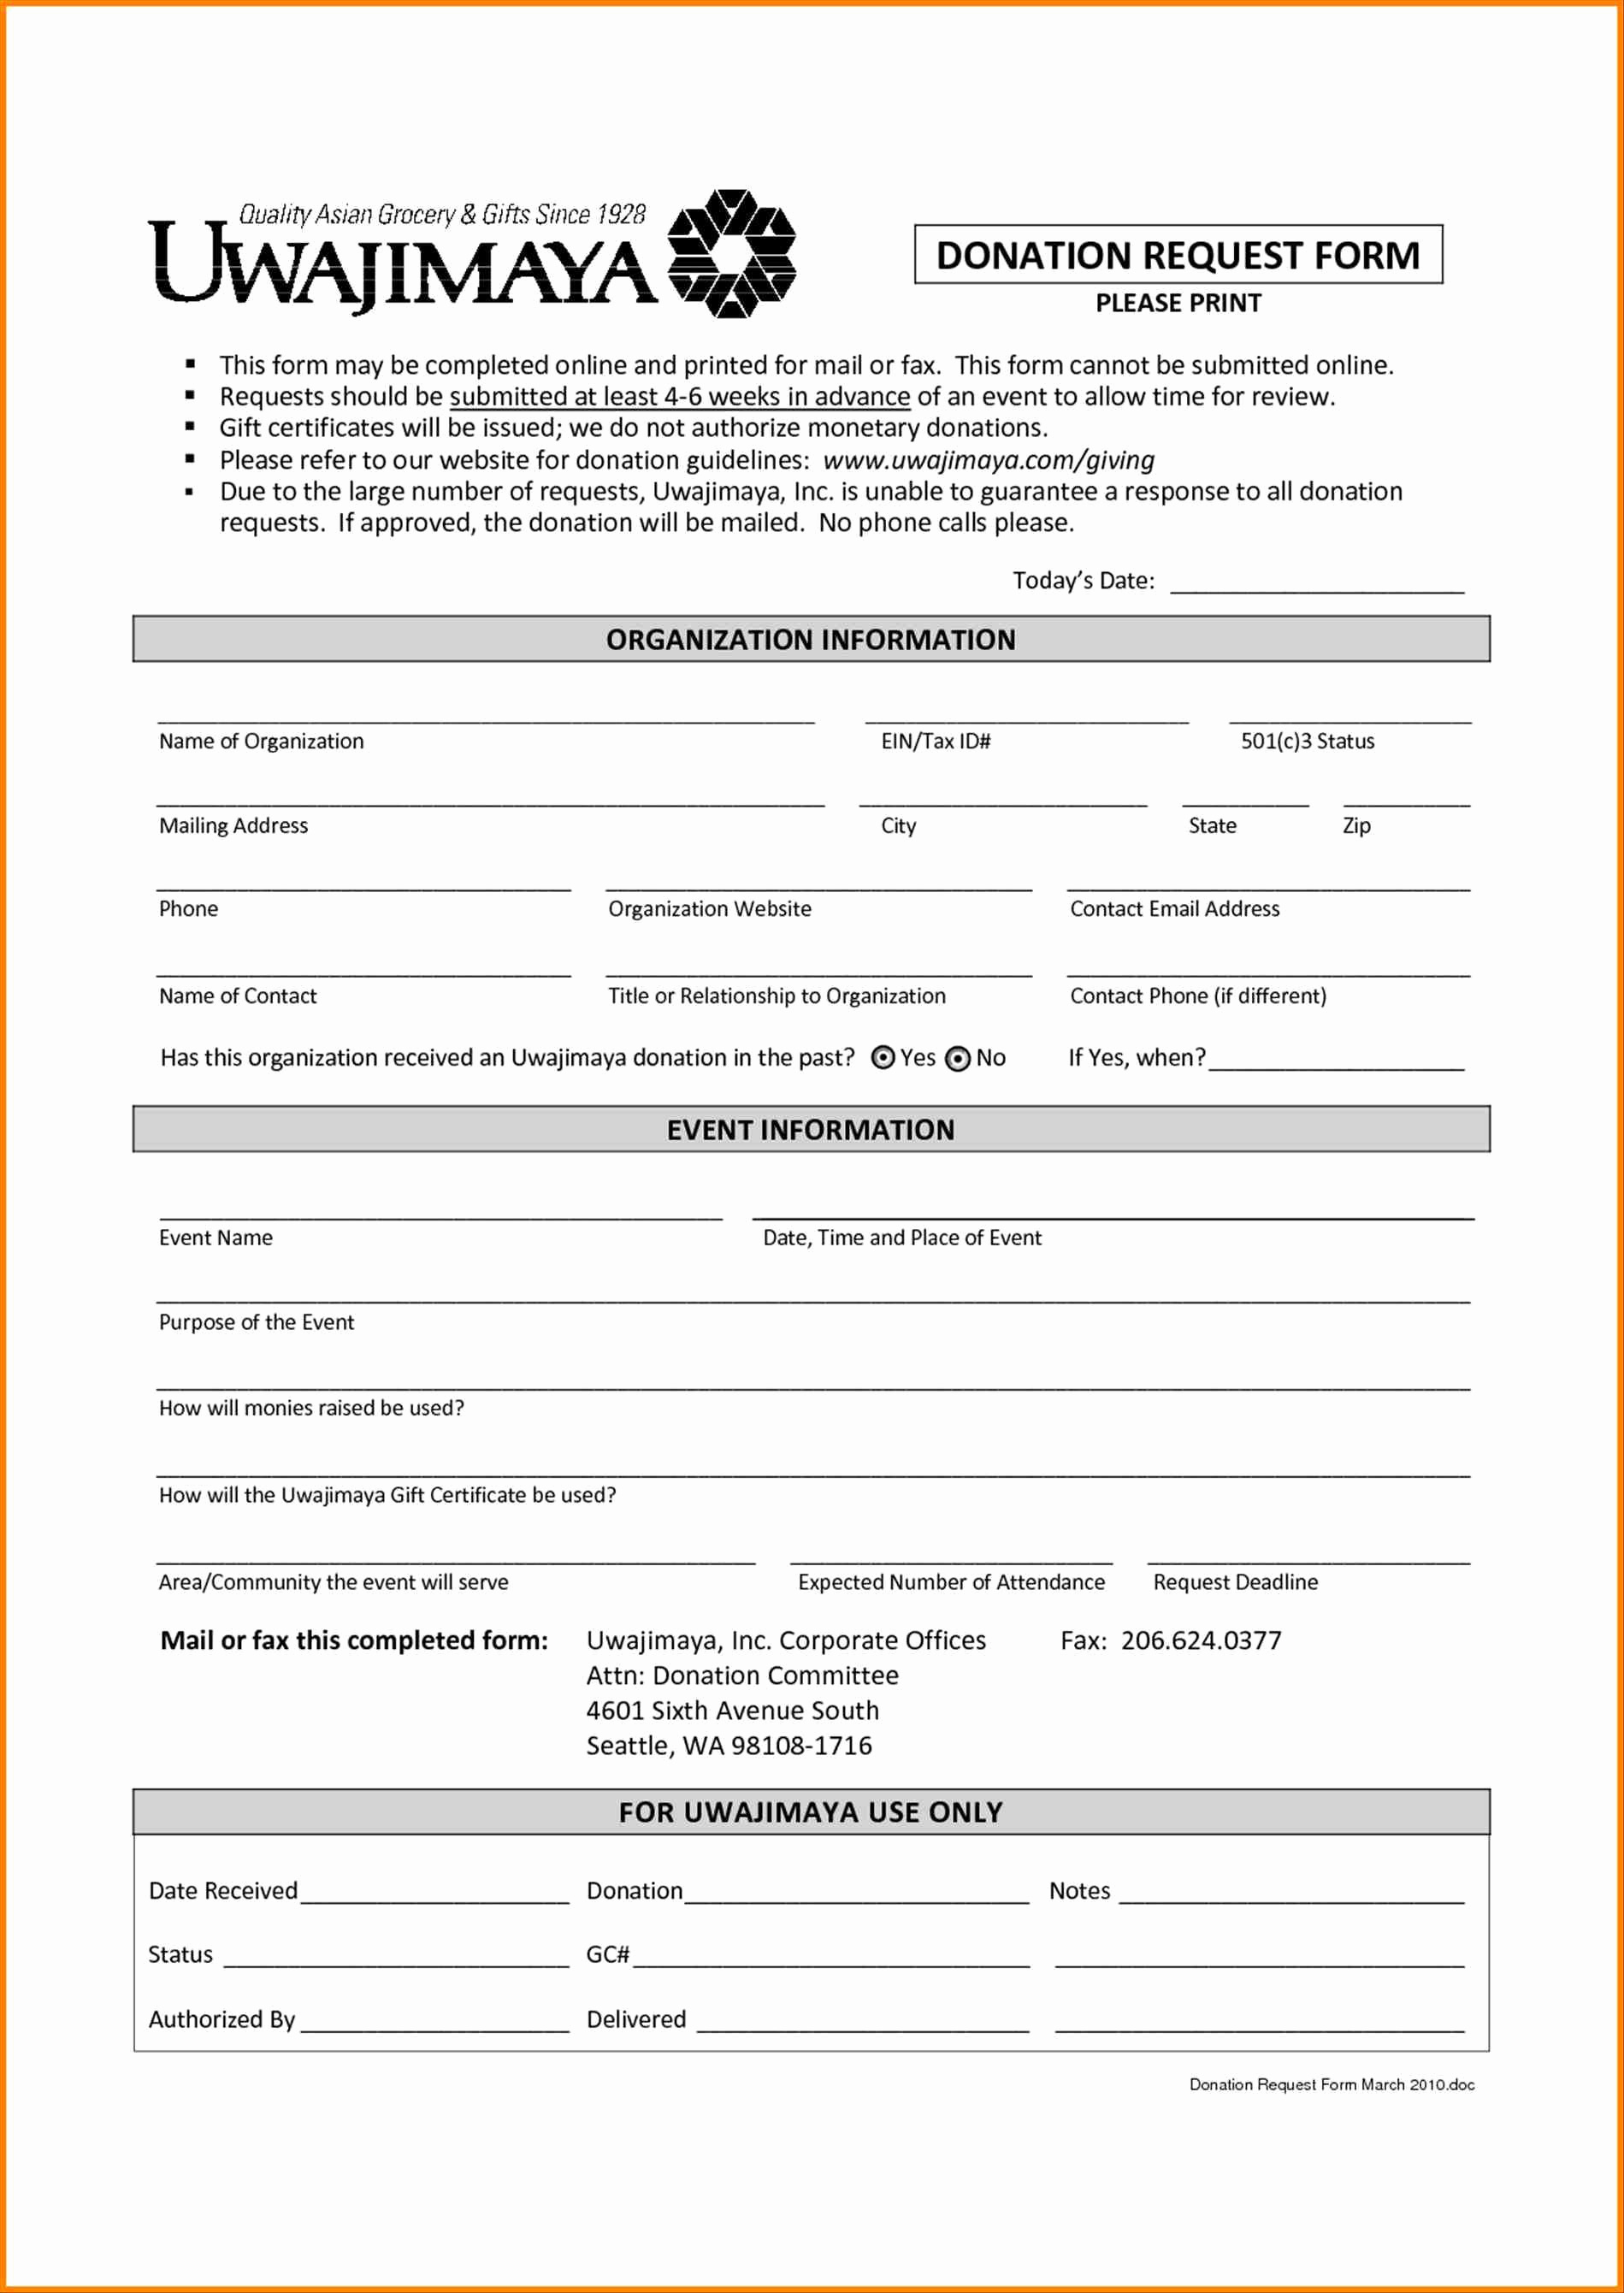 Goodwill Donation Value Guide 2017 Spreadsheet Pertaining To Irs Donation Value Guide 2017 Spreadsheet Best Of Goodwill Donation